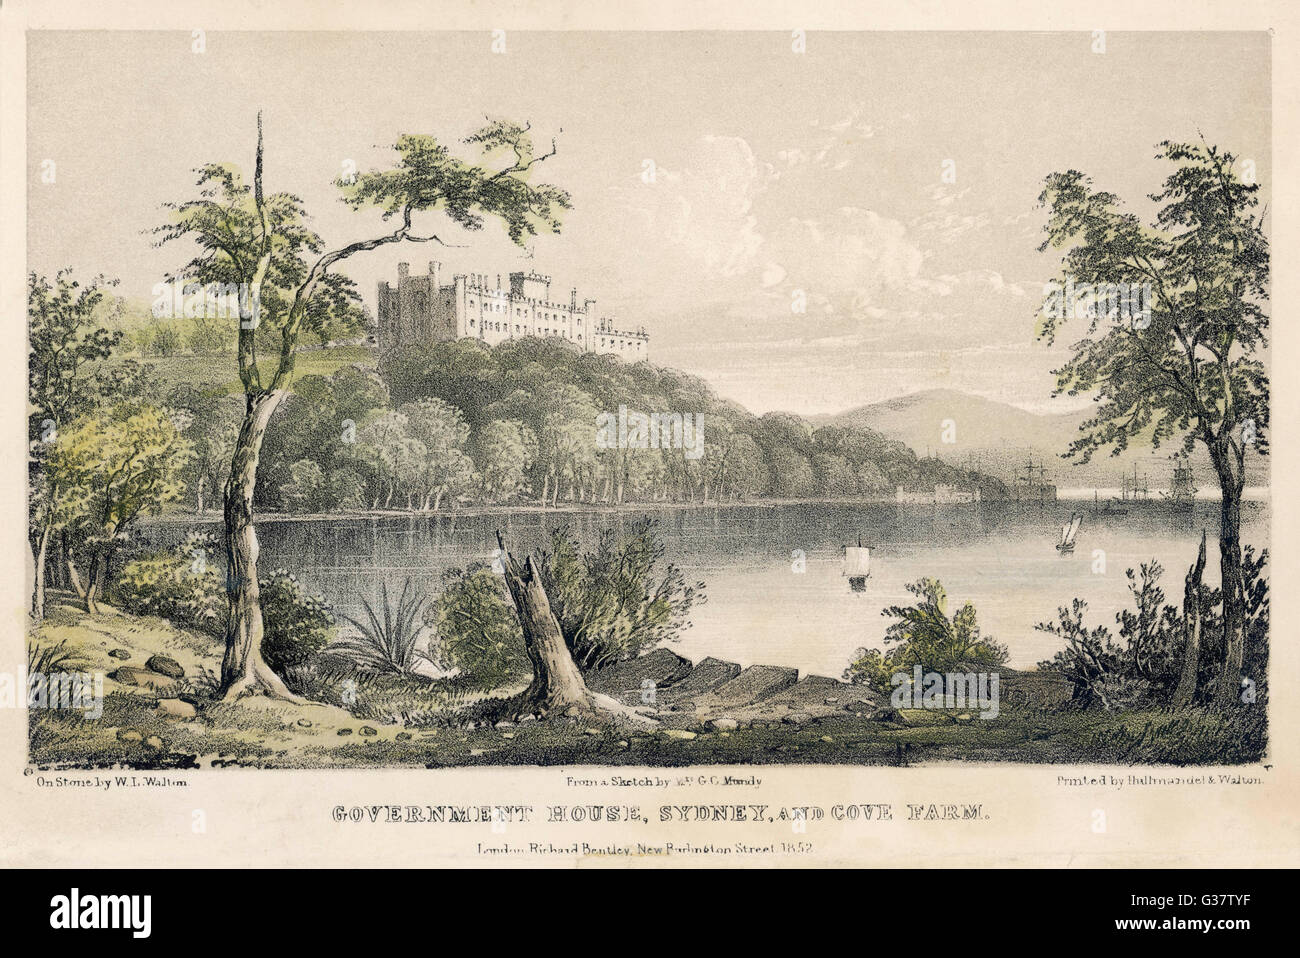 Government House and Cove Farm         Date: 1852 - Stock Image